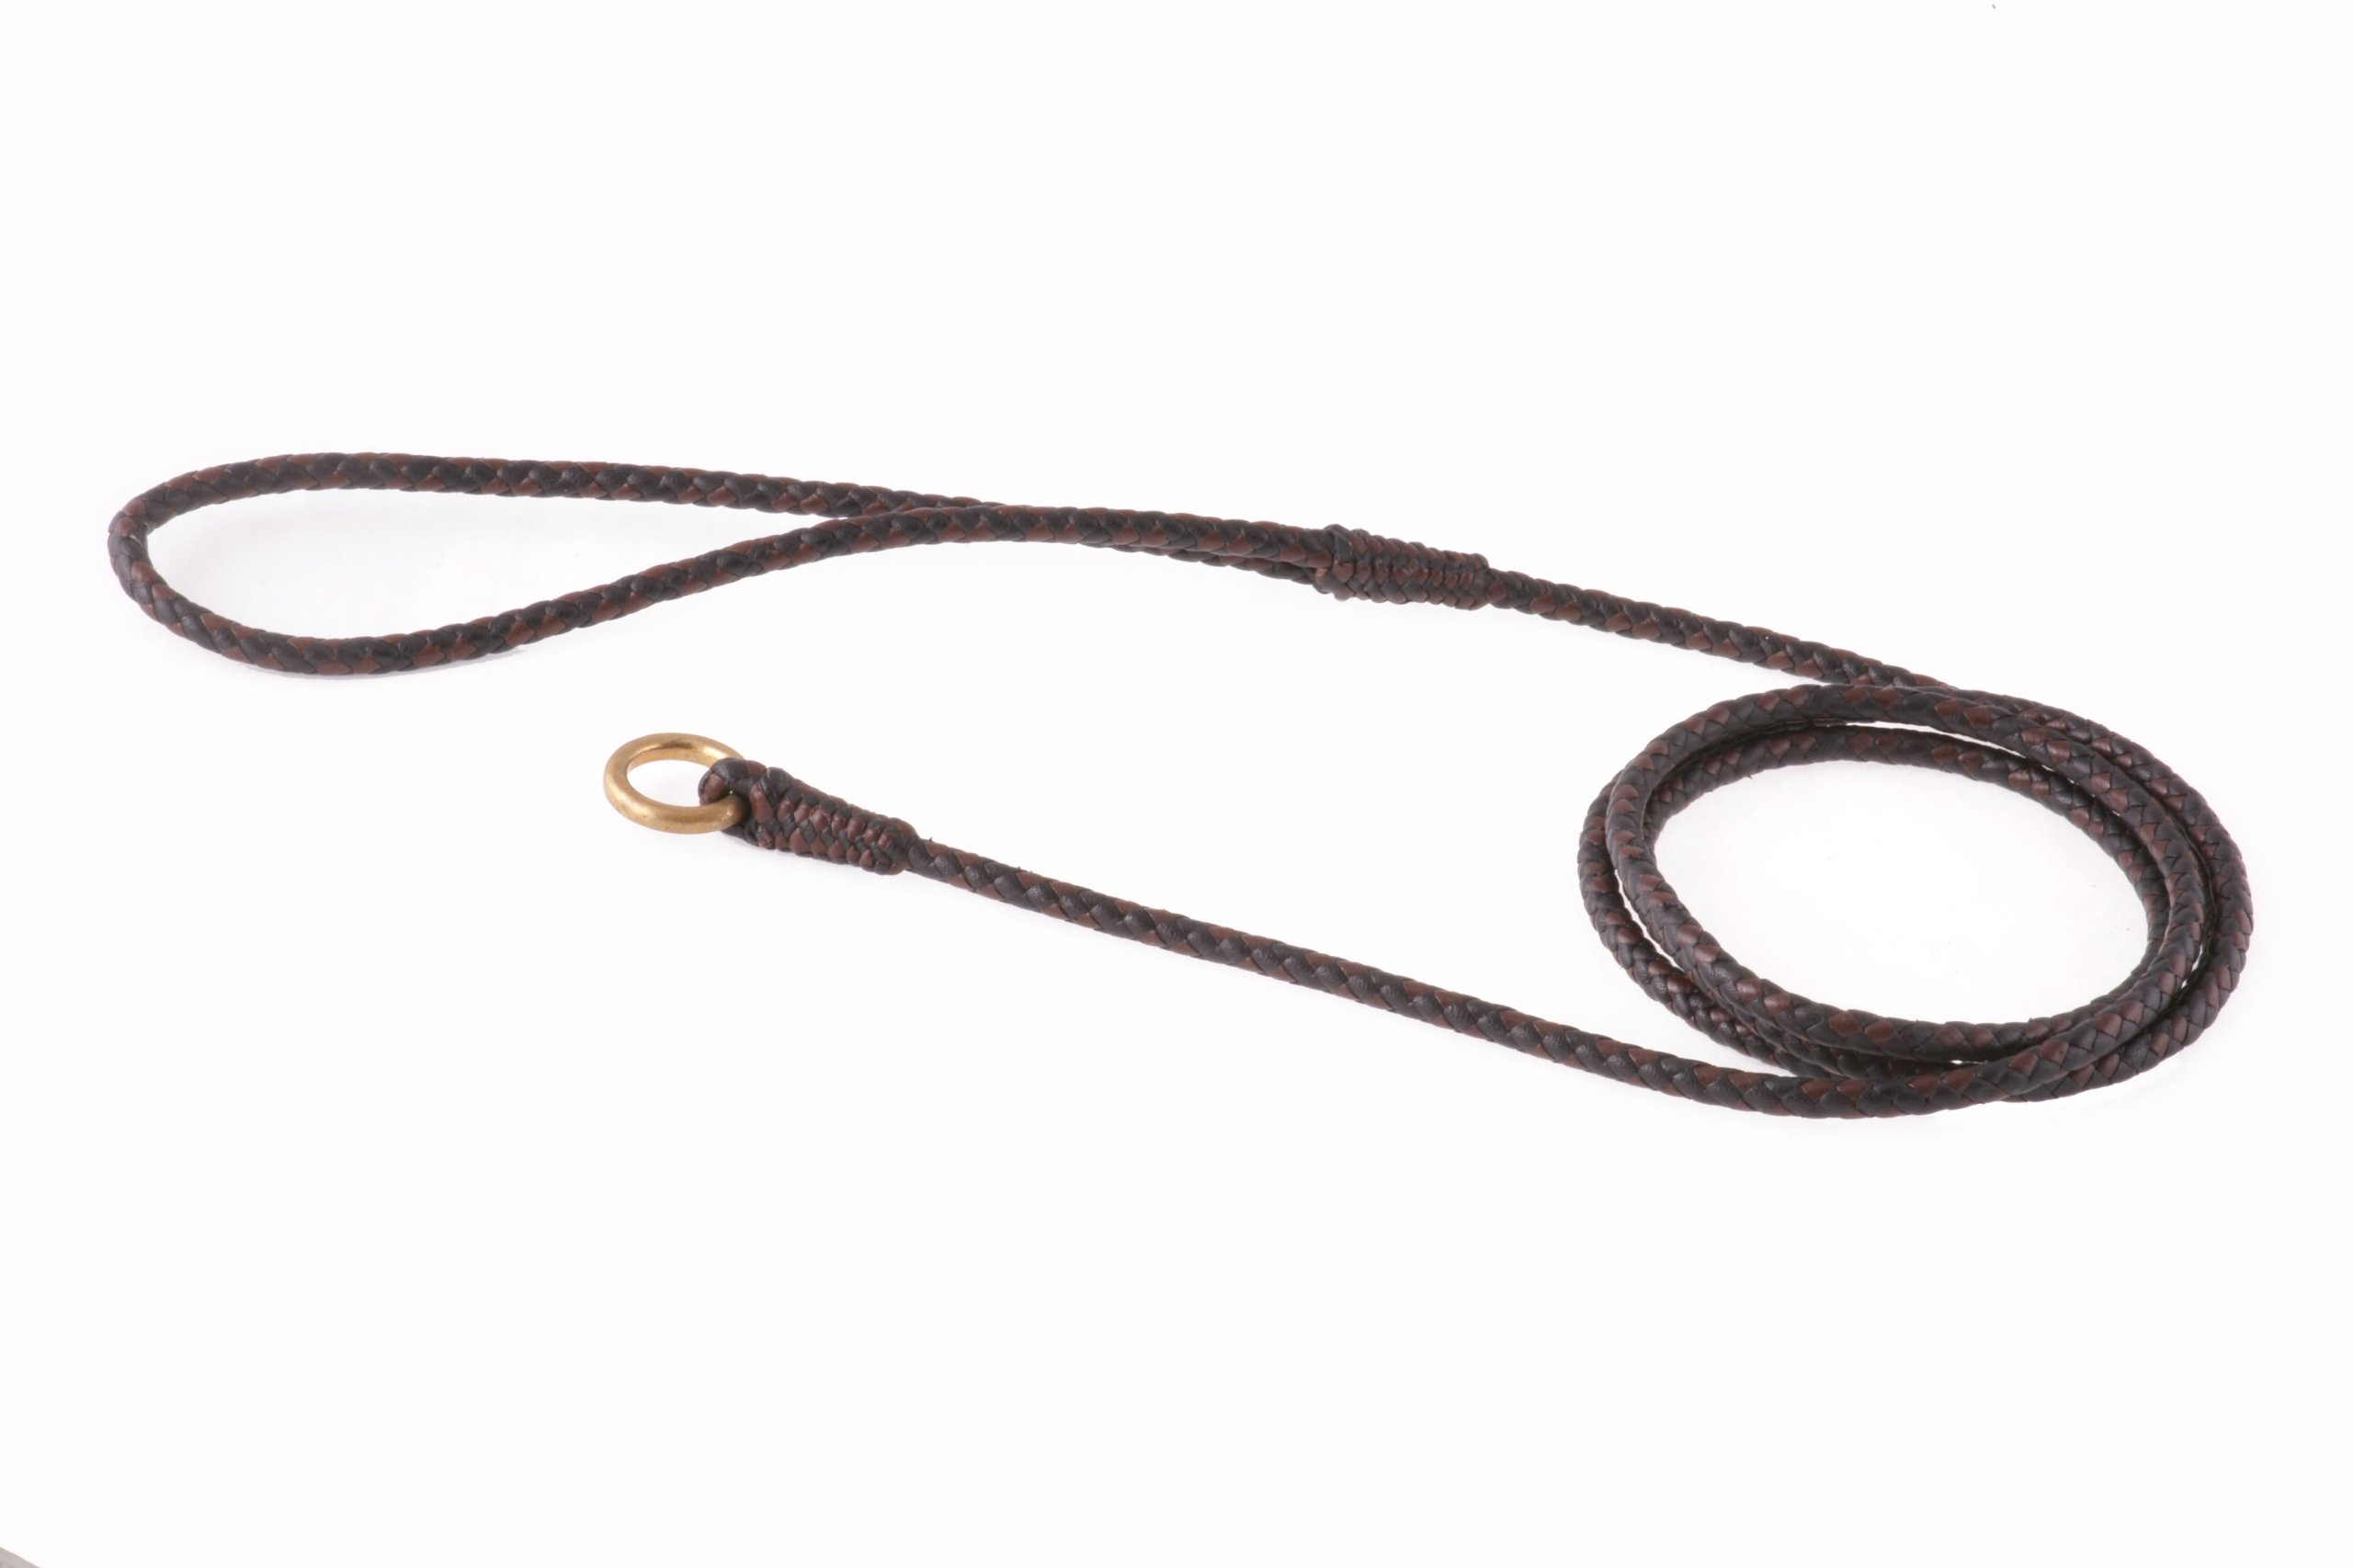 Alvalley Braided Slip Lead for Dogs 4ft - Thin by Alvalley LLC